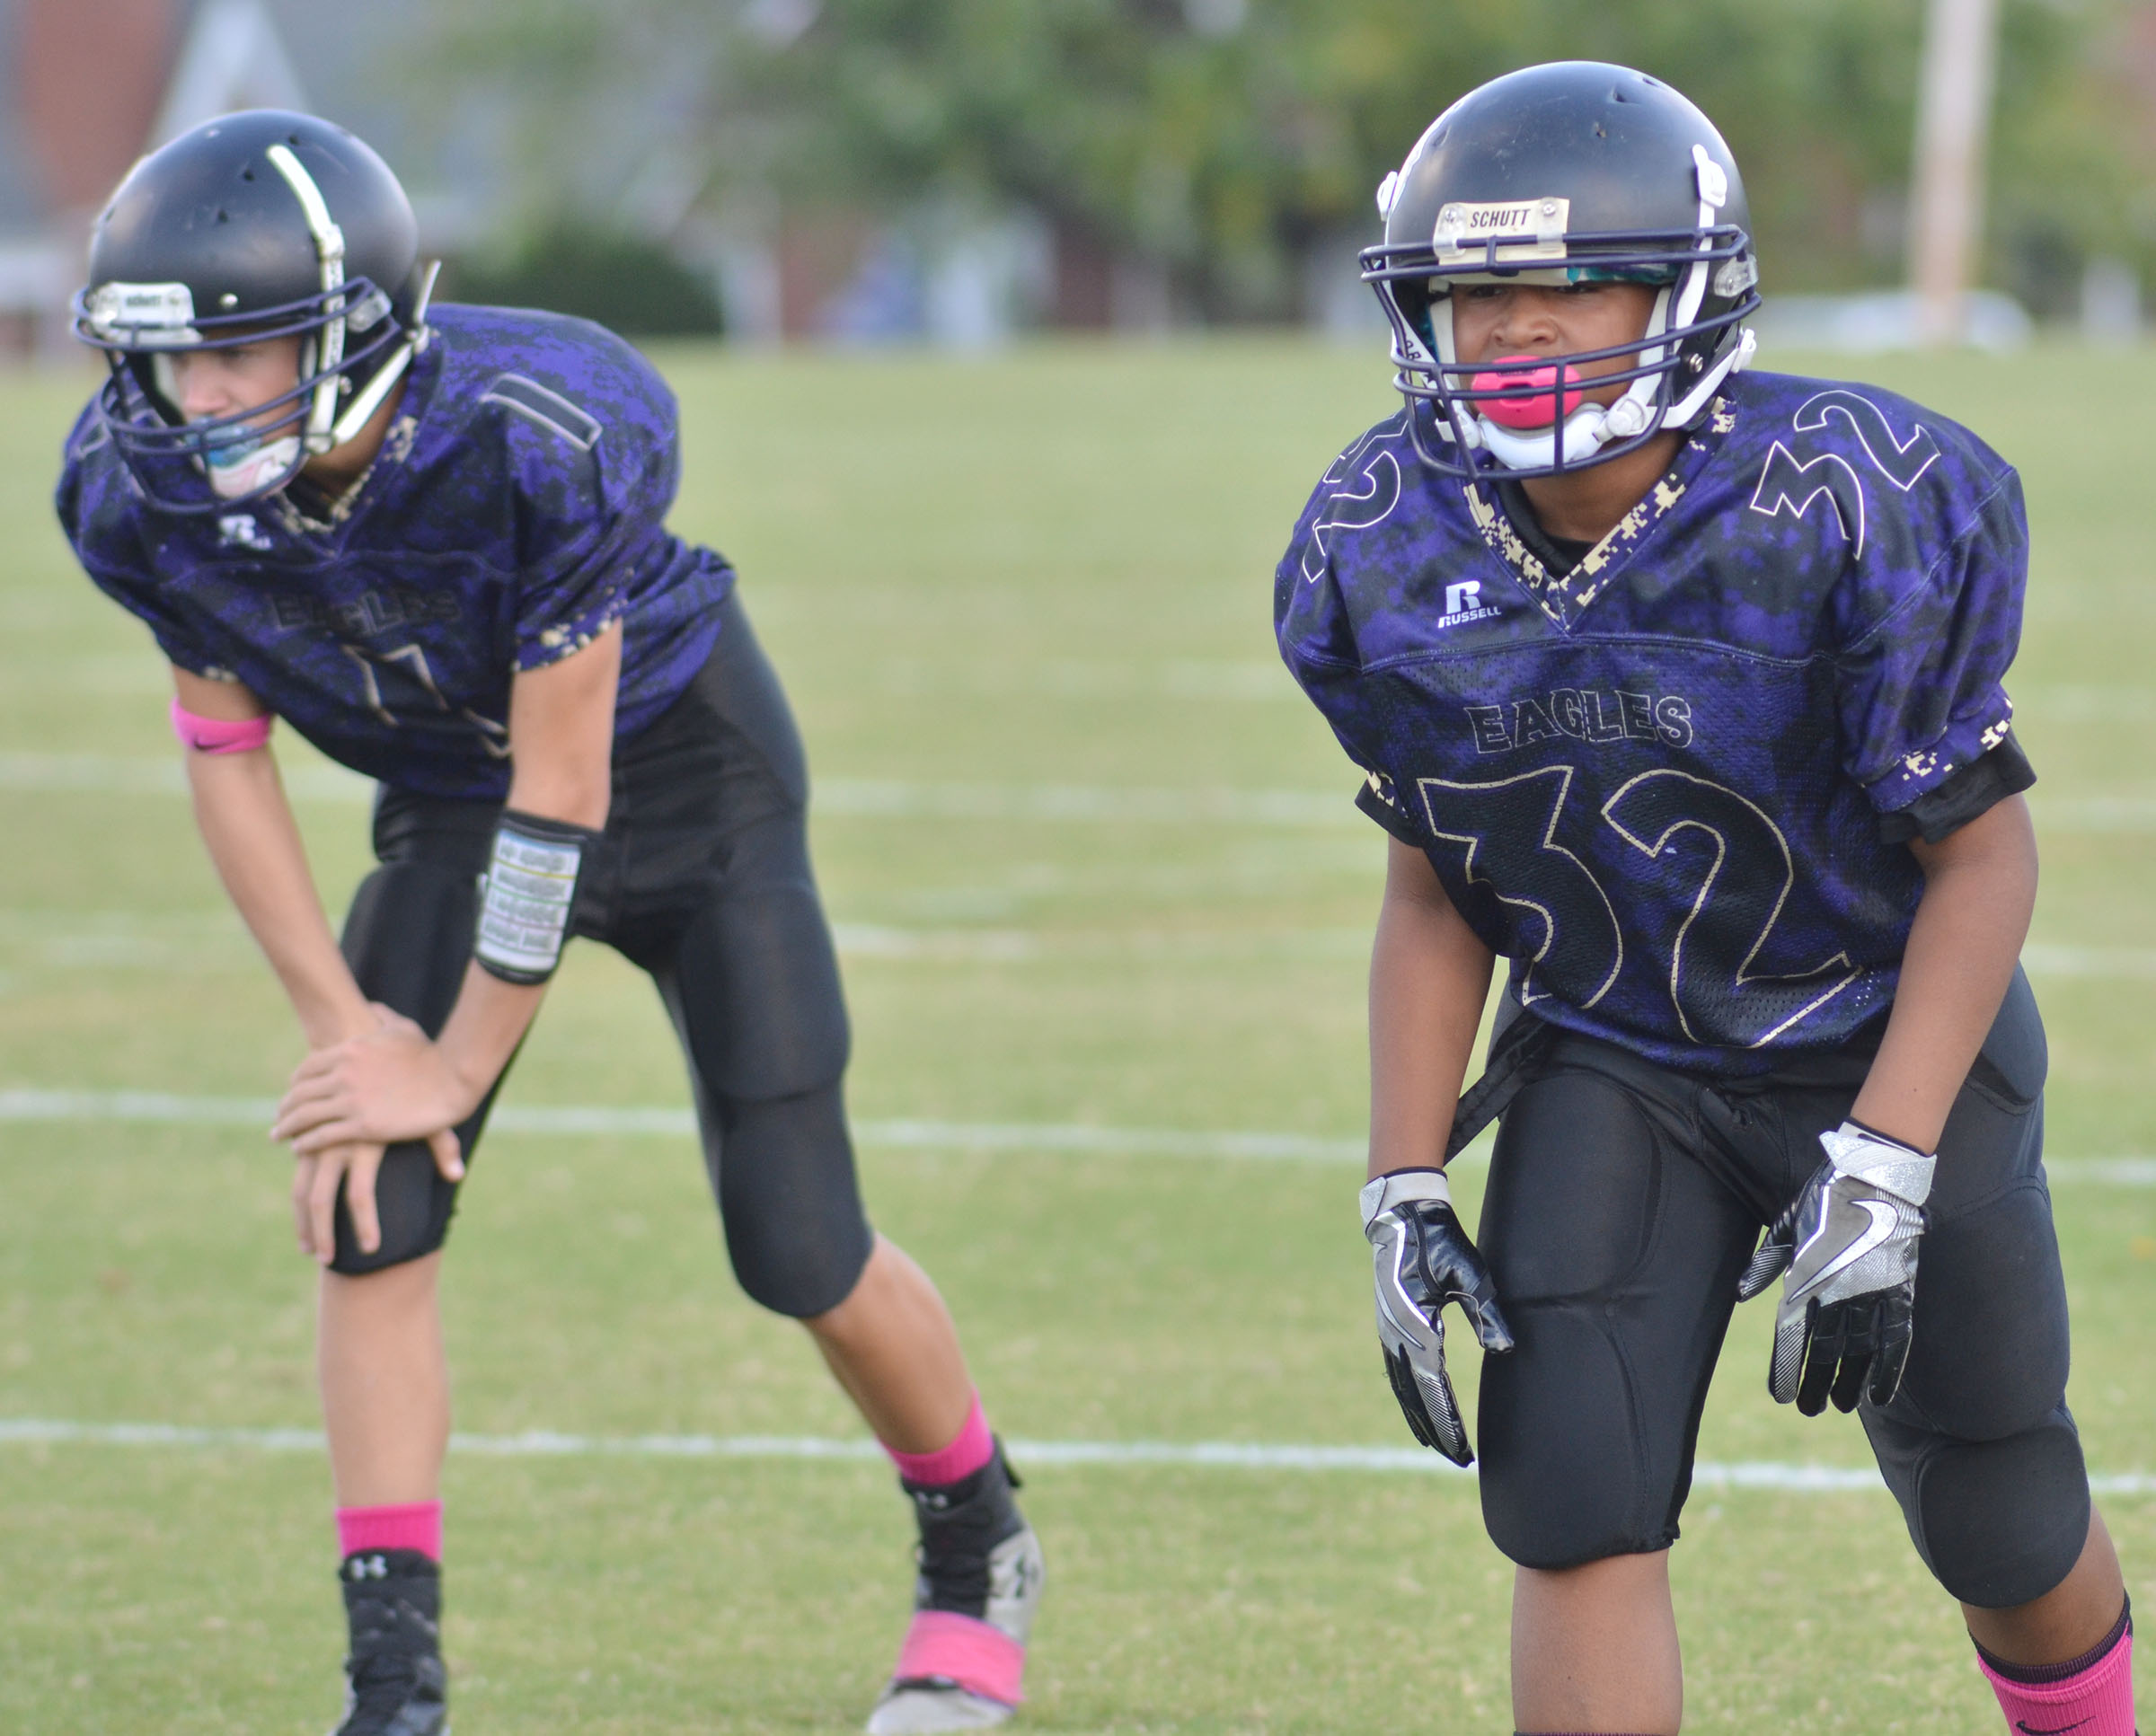 CMS sixth-grader Deondre' Weathers gets set for a play.